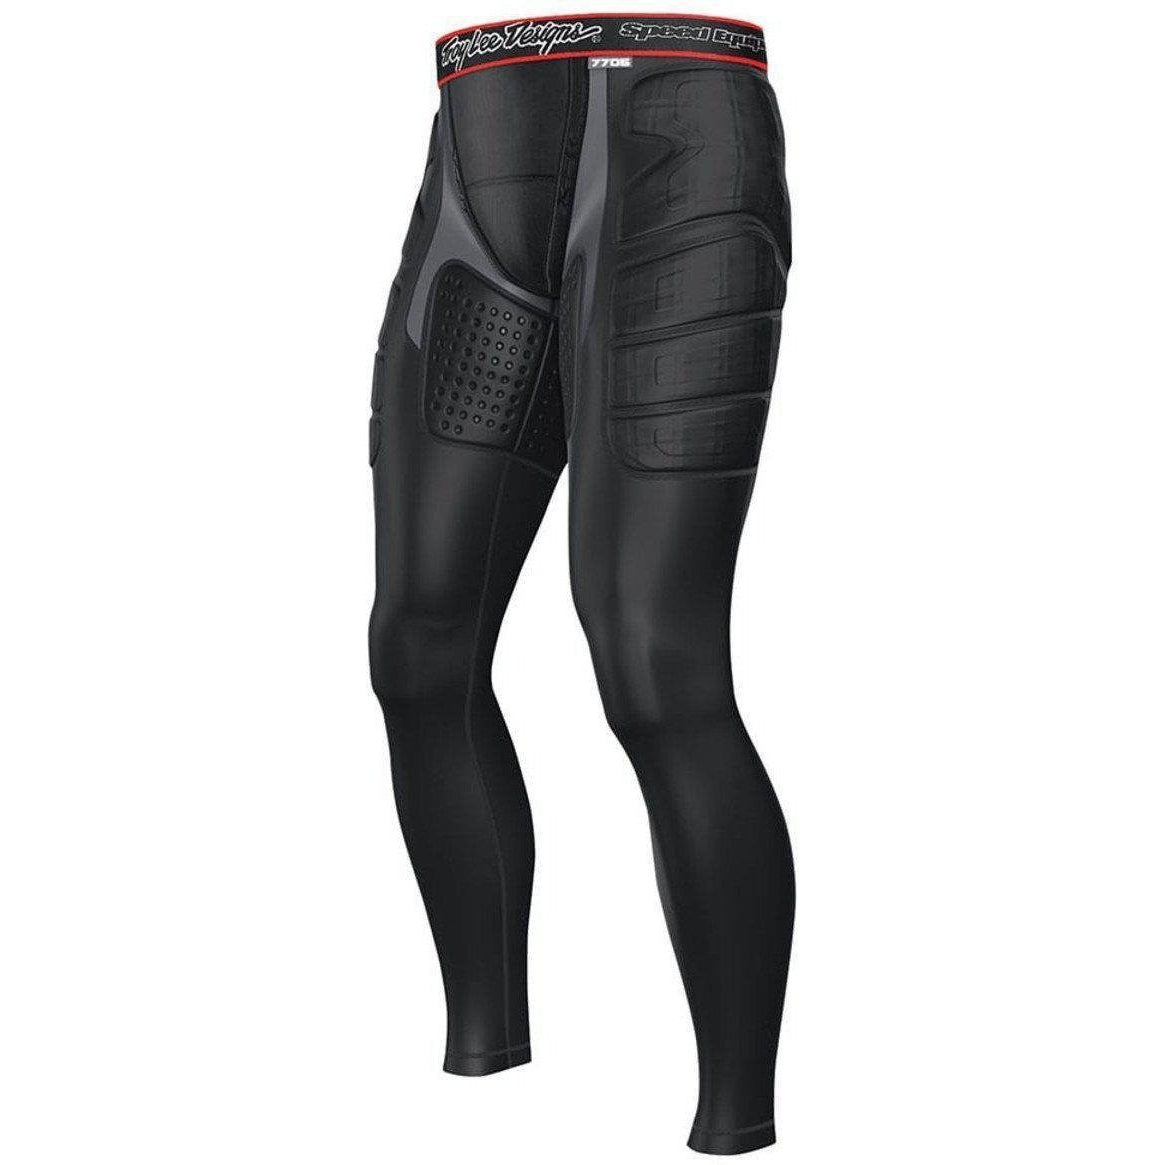 Protection - Troy Lee Designs LPP 7705 Pant